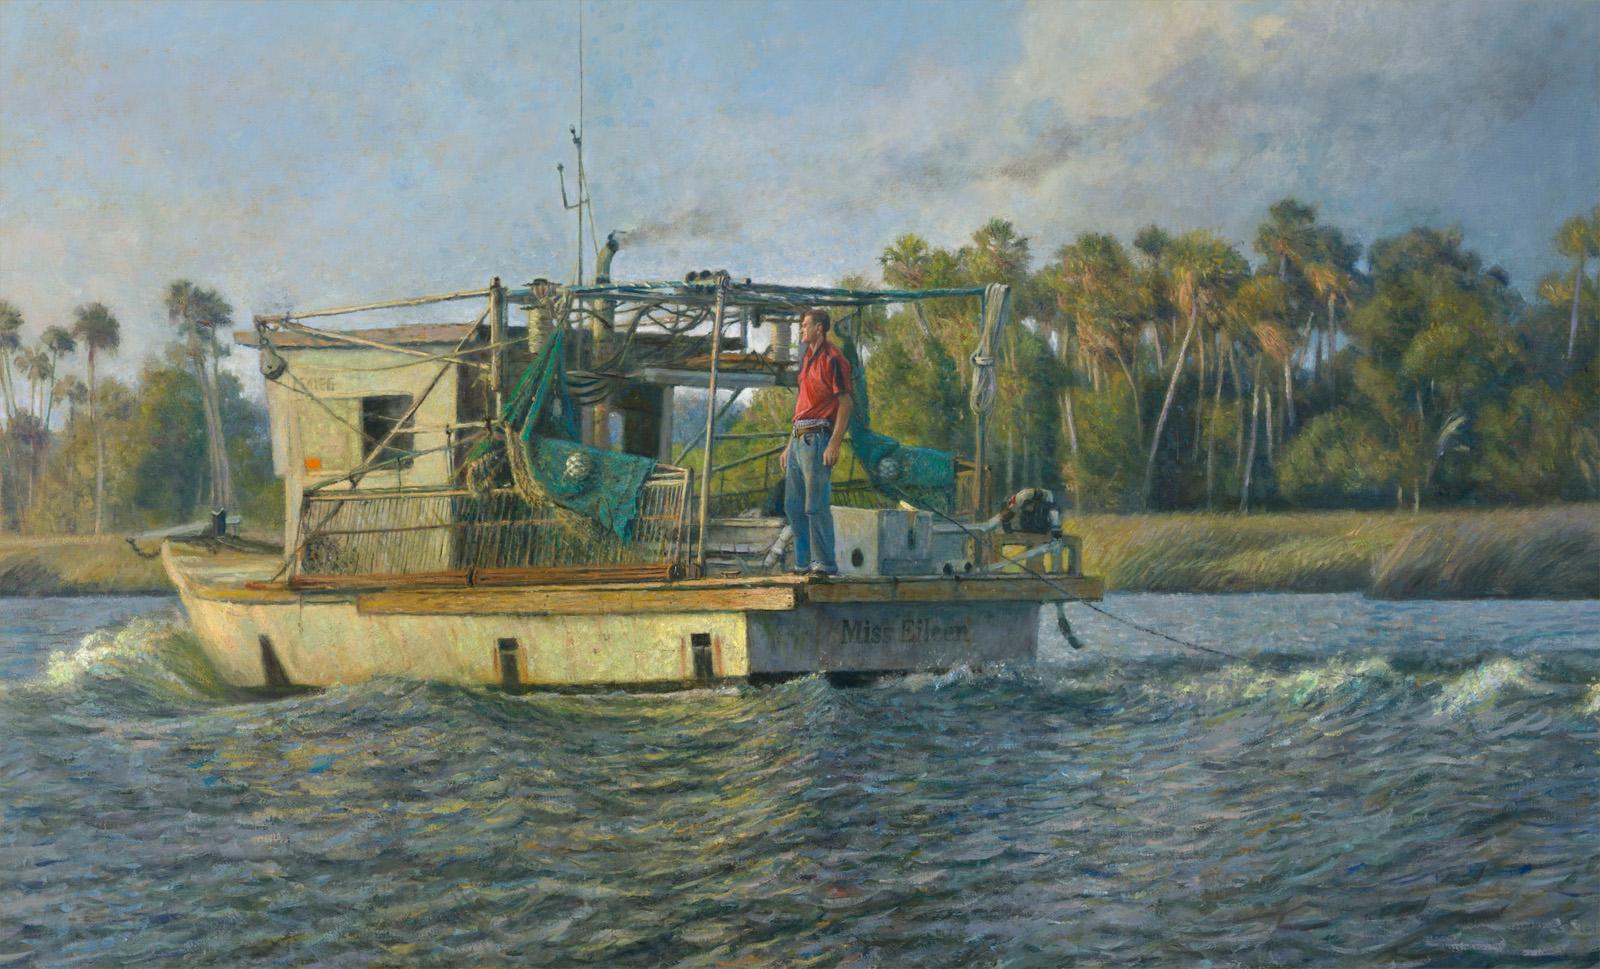 Shrimper on Crystal River